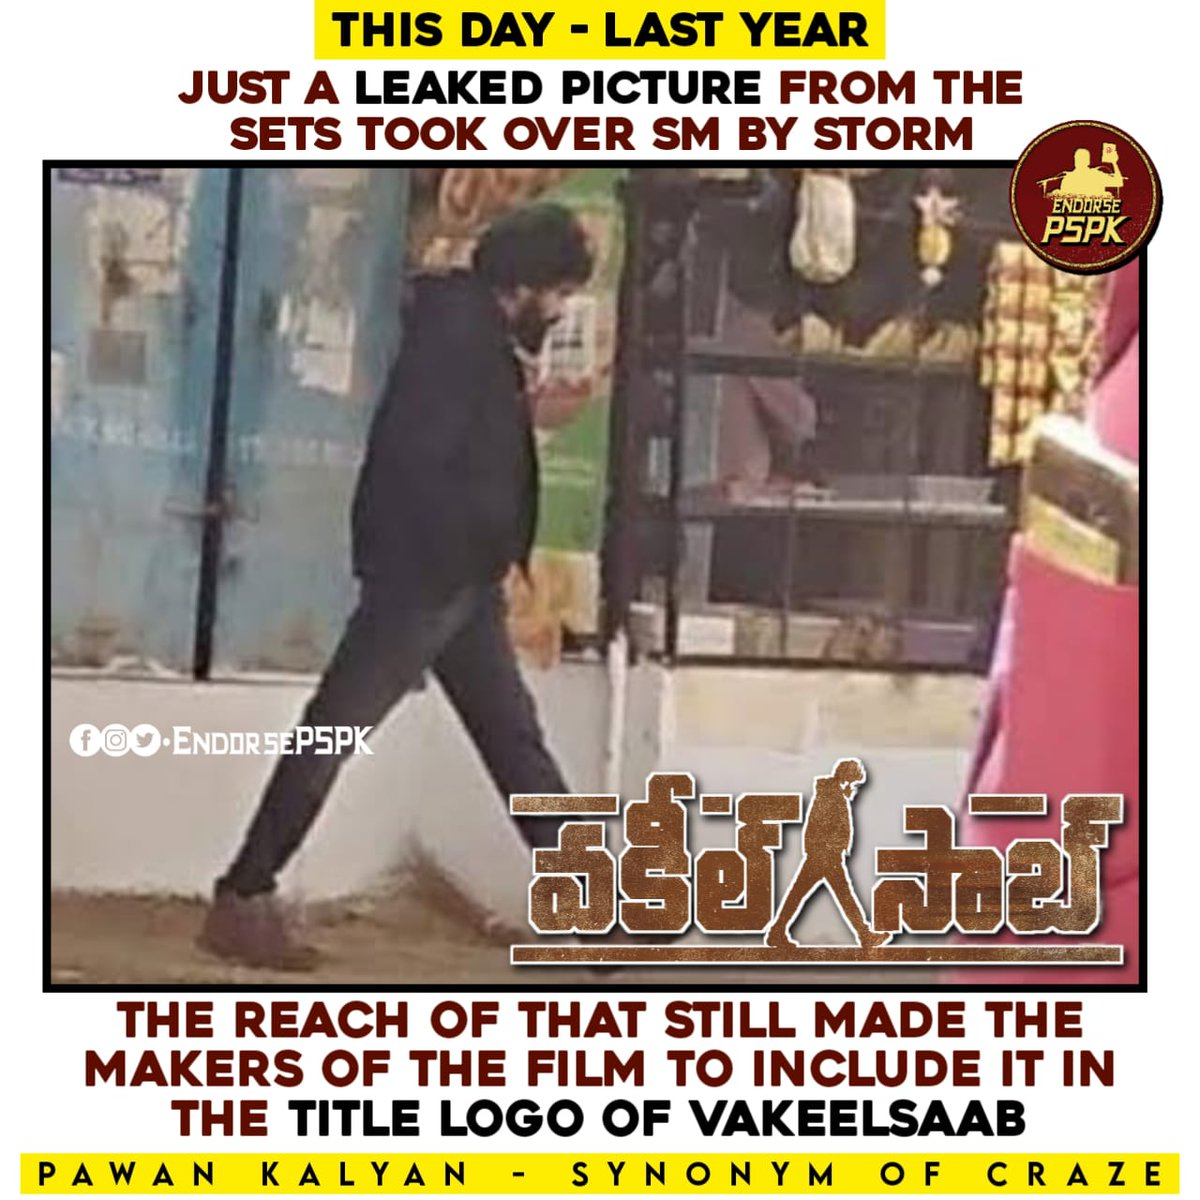 One Year For This Massive Leaked Pic 💥 The man back to action 🤟🏻😎  TEASER LINK 👇🏻👇🏻👇🏻   #VakeelSaabTEASER